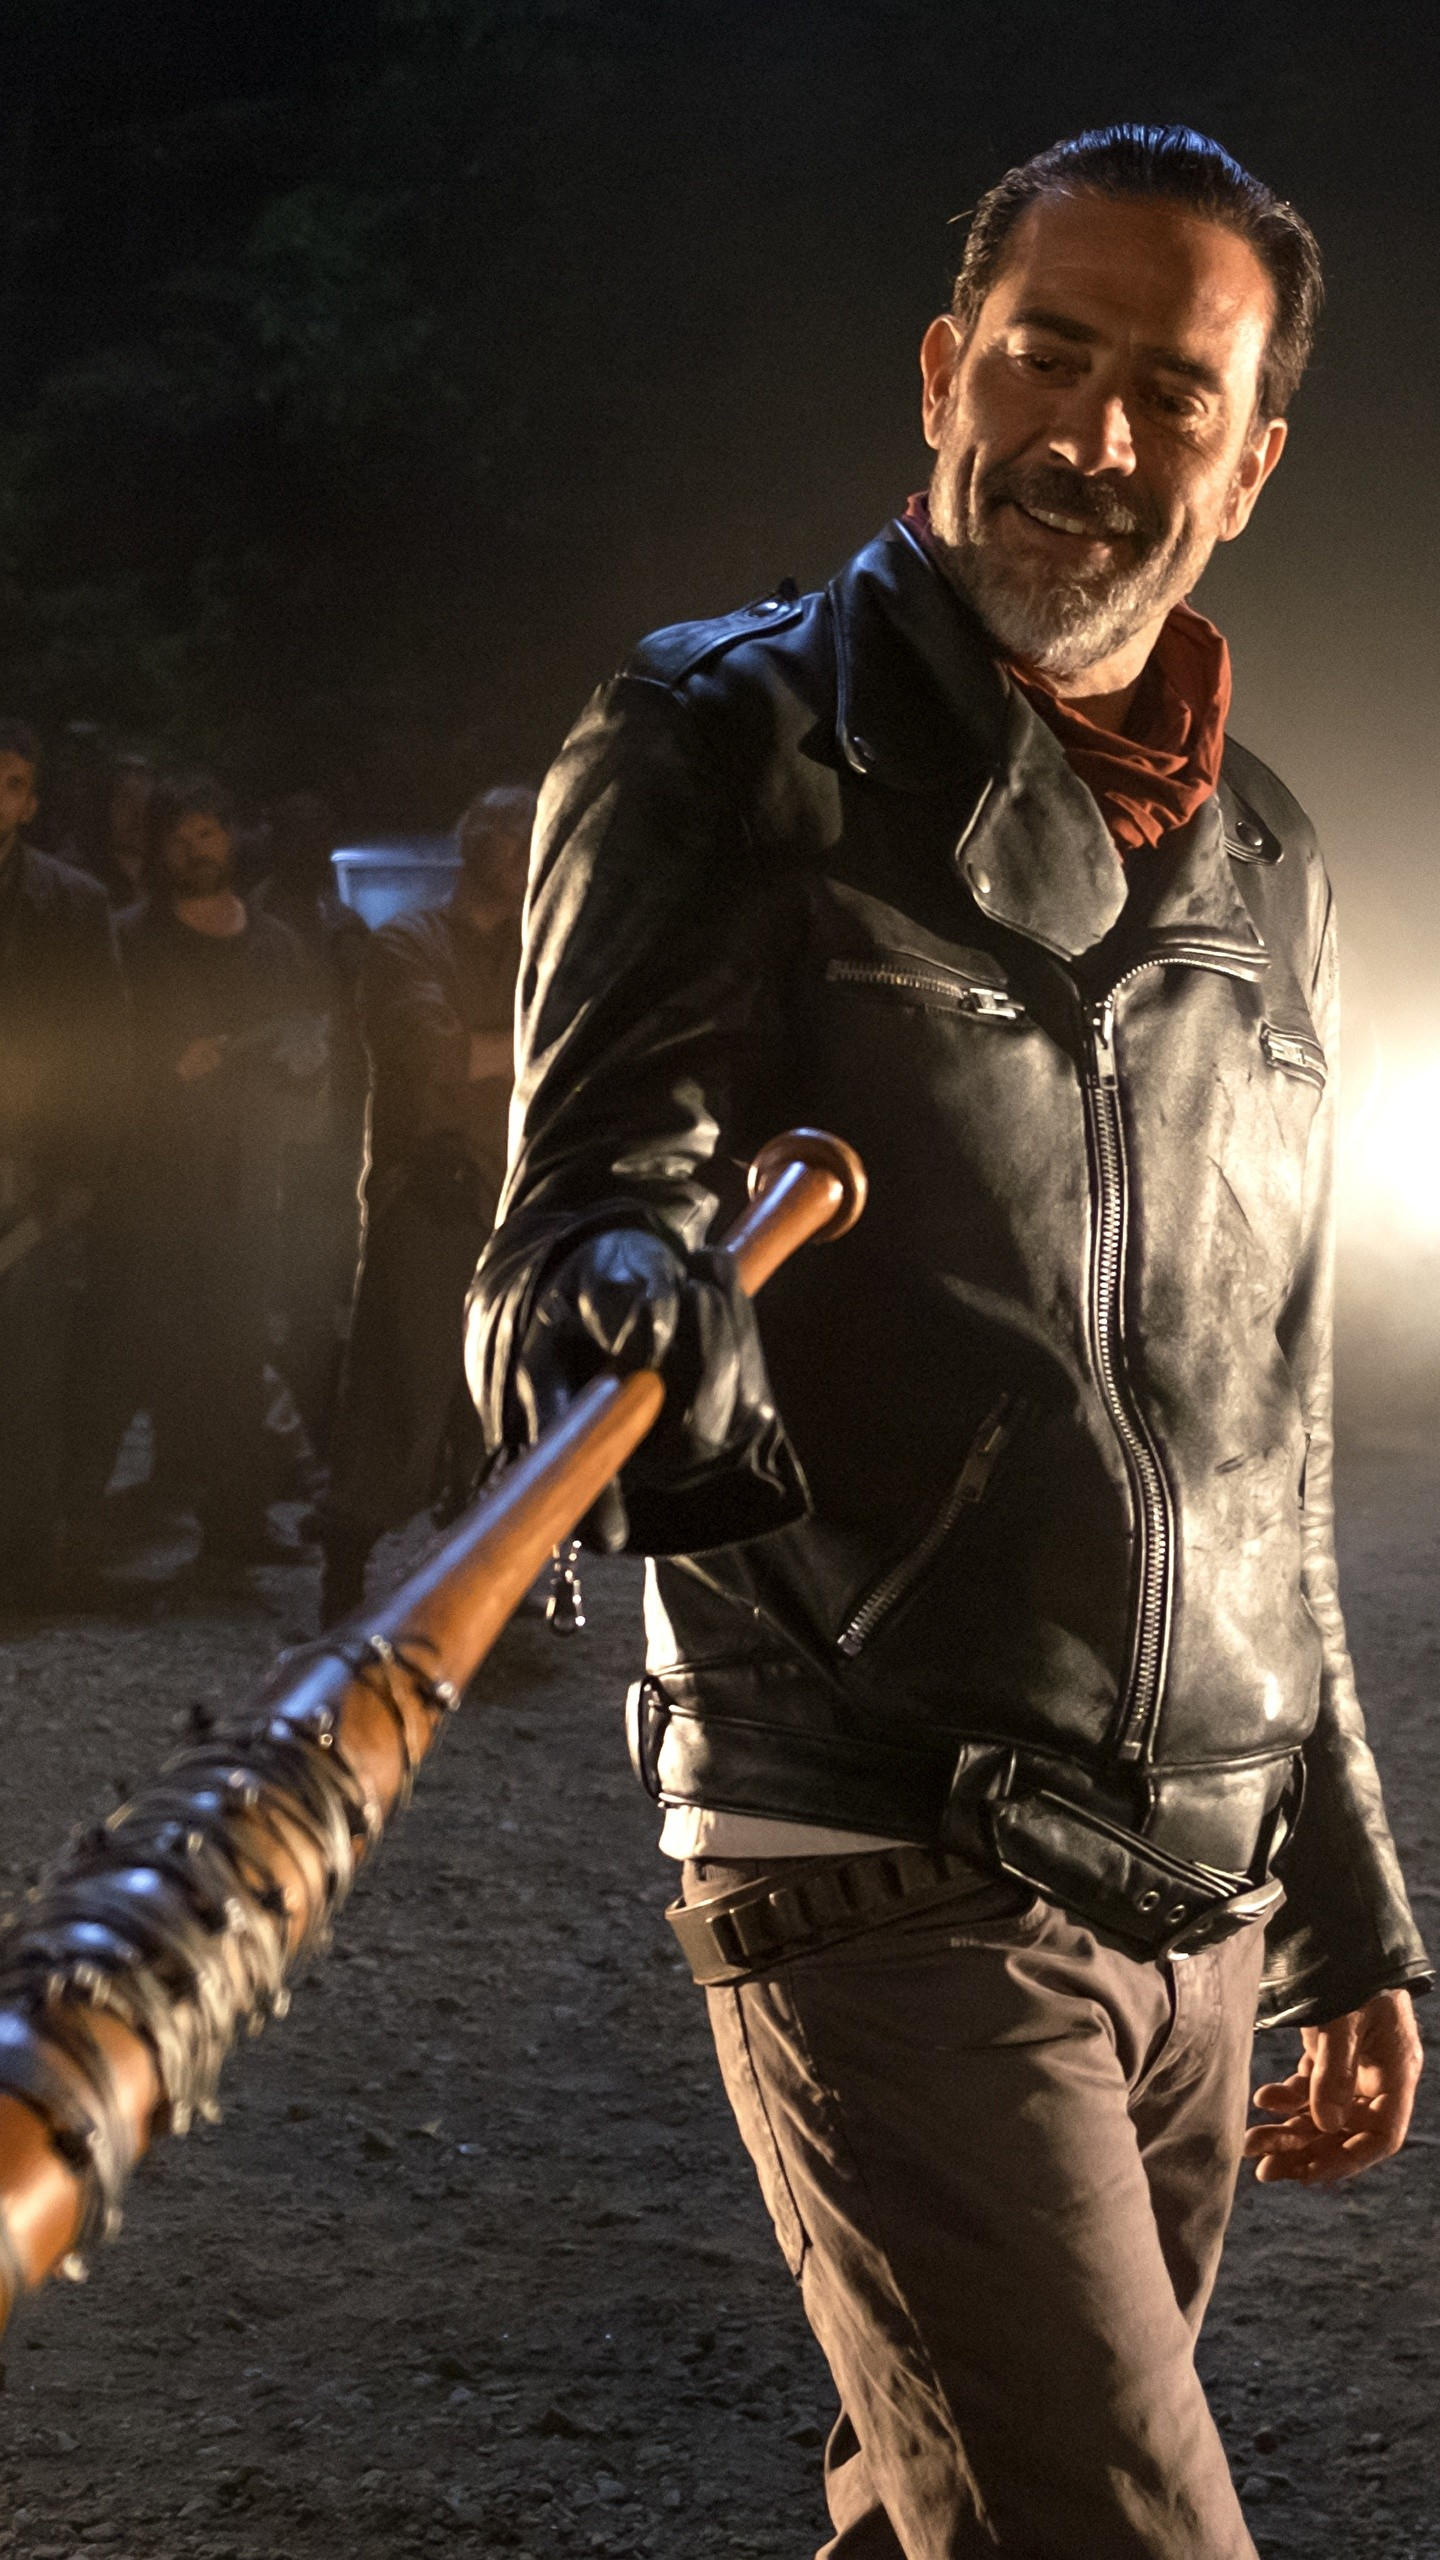 Negan Wallpaper Download Free Stunning Full Hd Backgrounds For